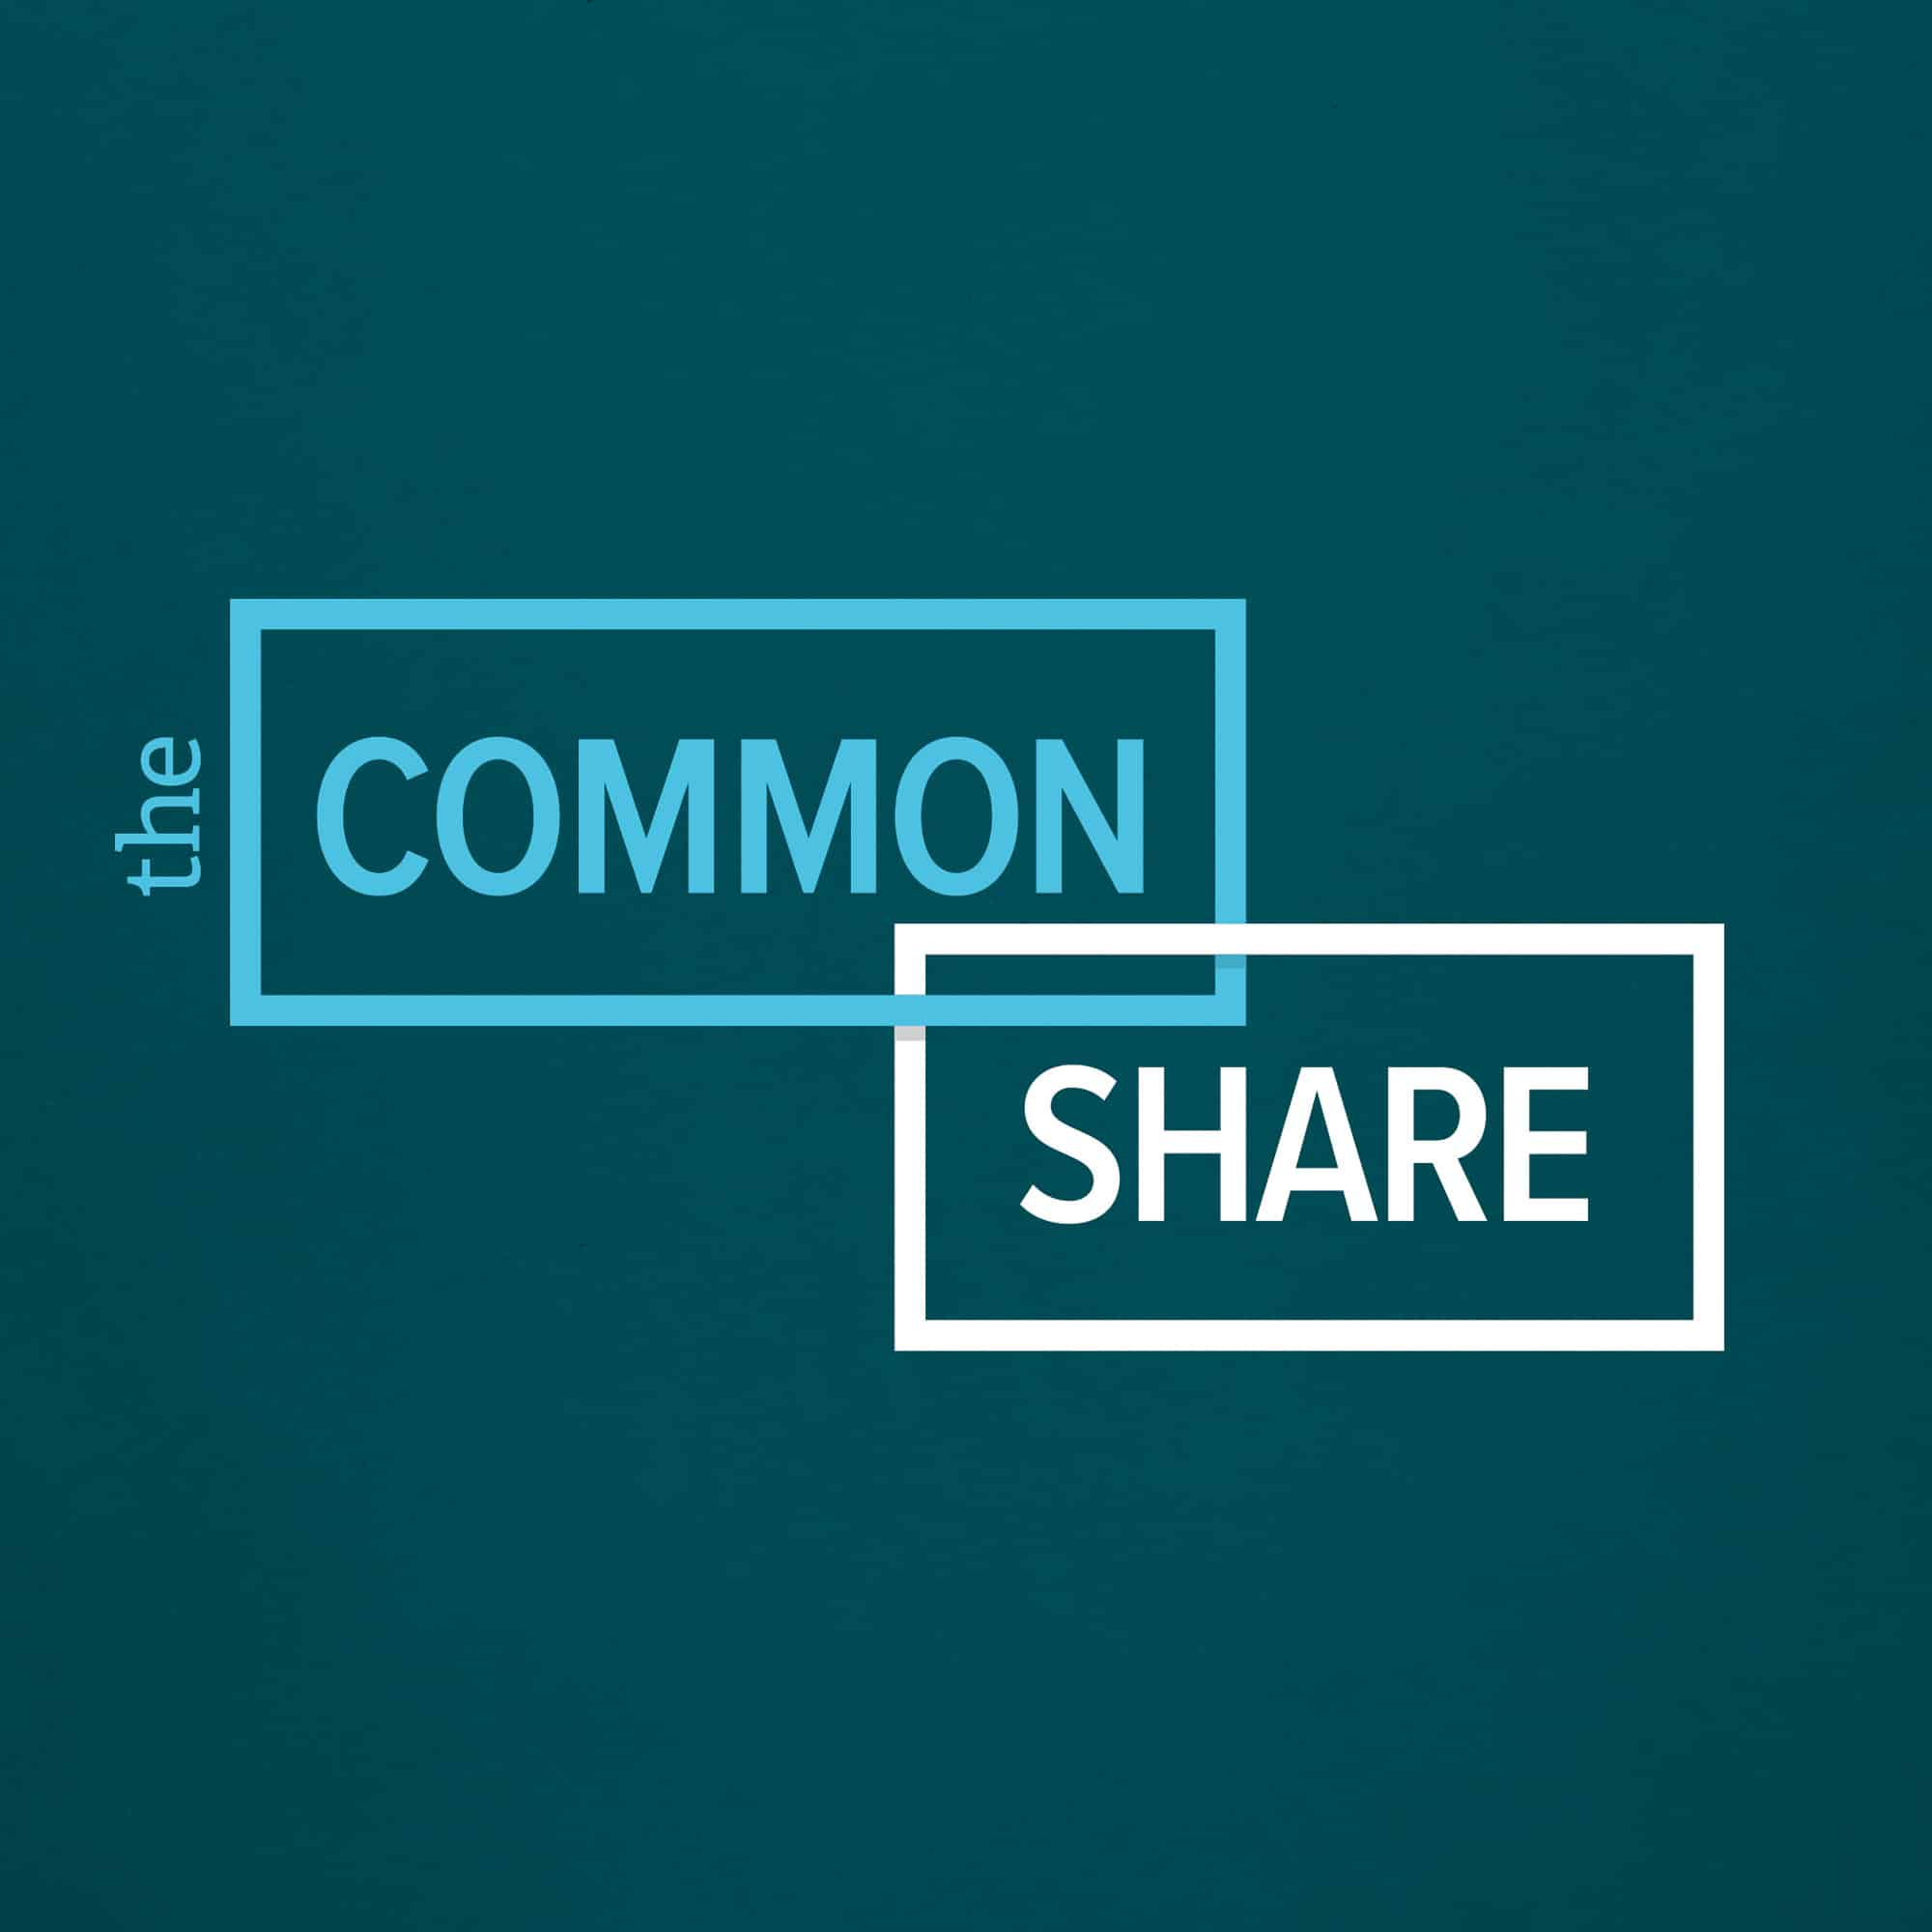 the-common-share-co-op-talk